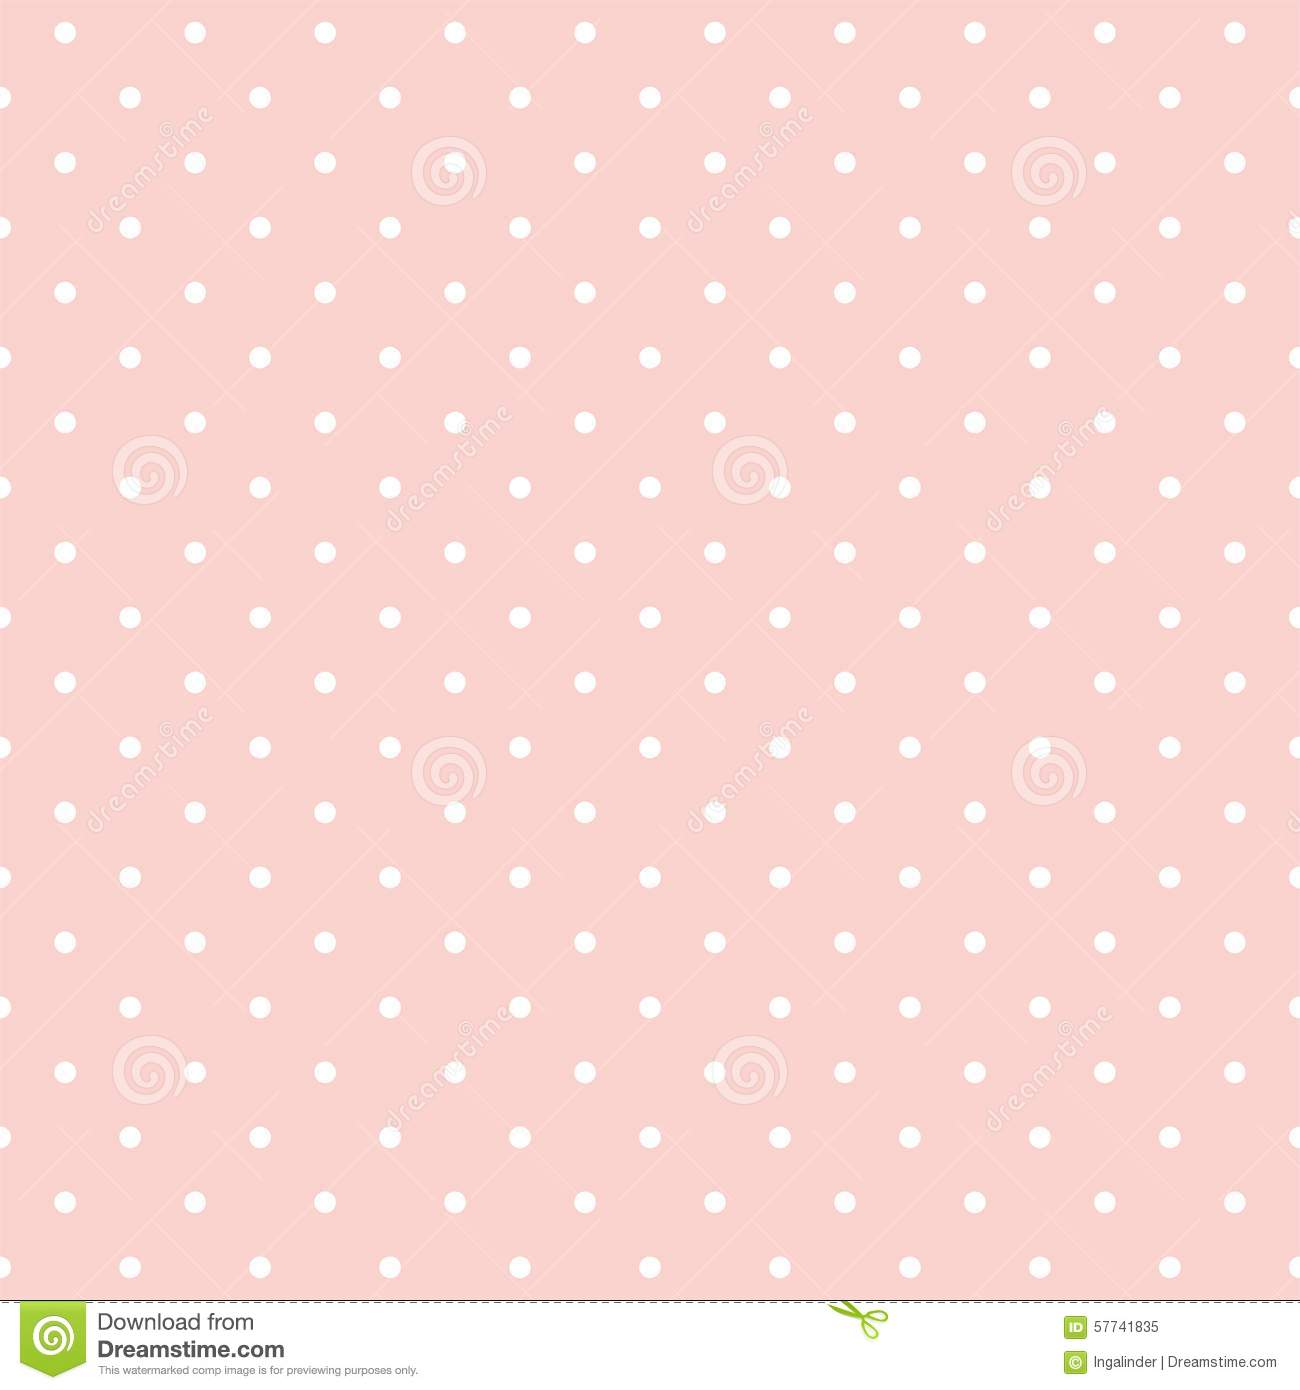 Small Cute Baby Wallpaper Download Tile Vector Pattern With White On Pink Background Stock